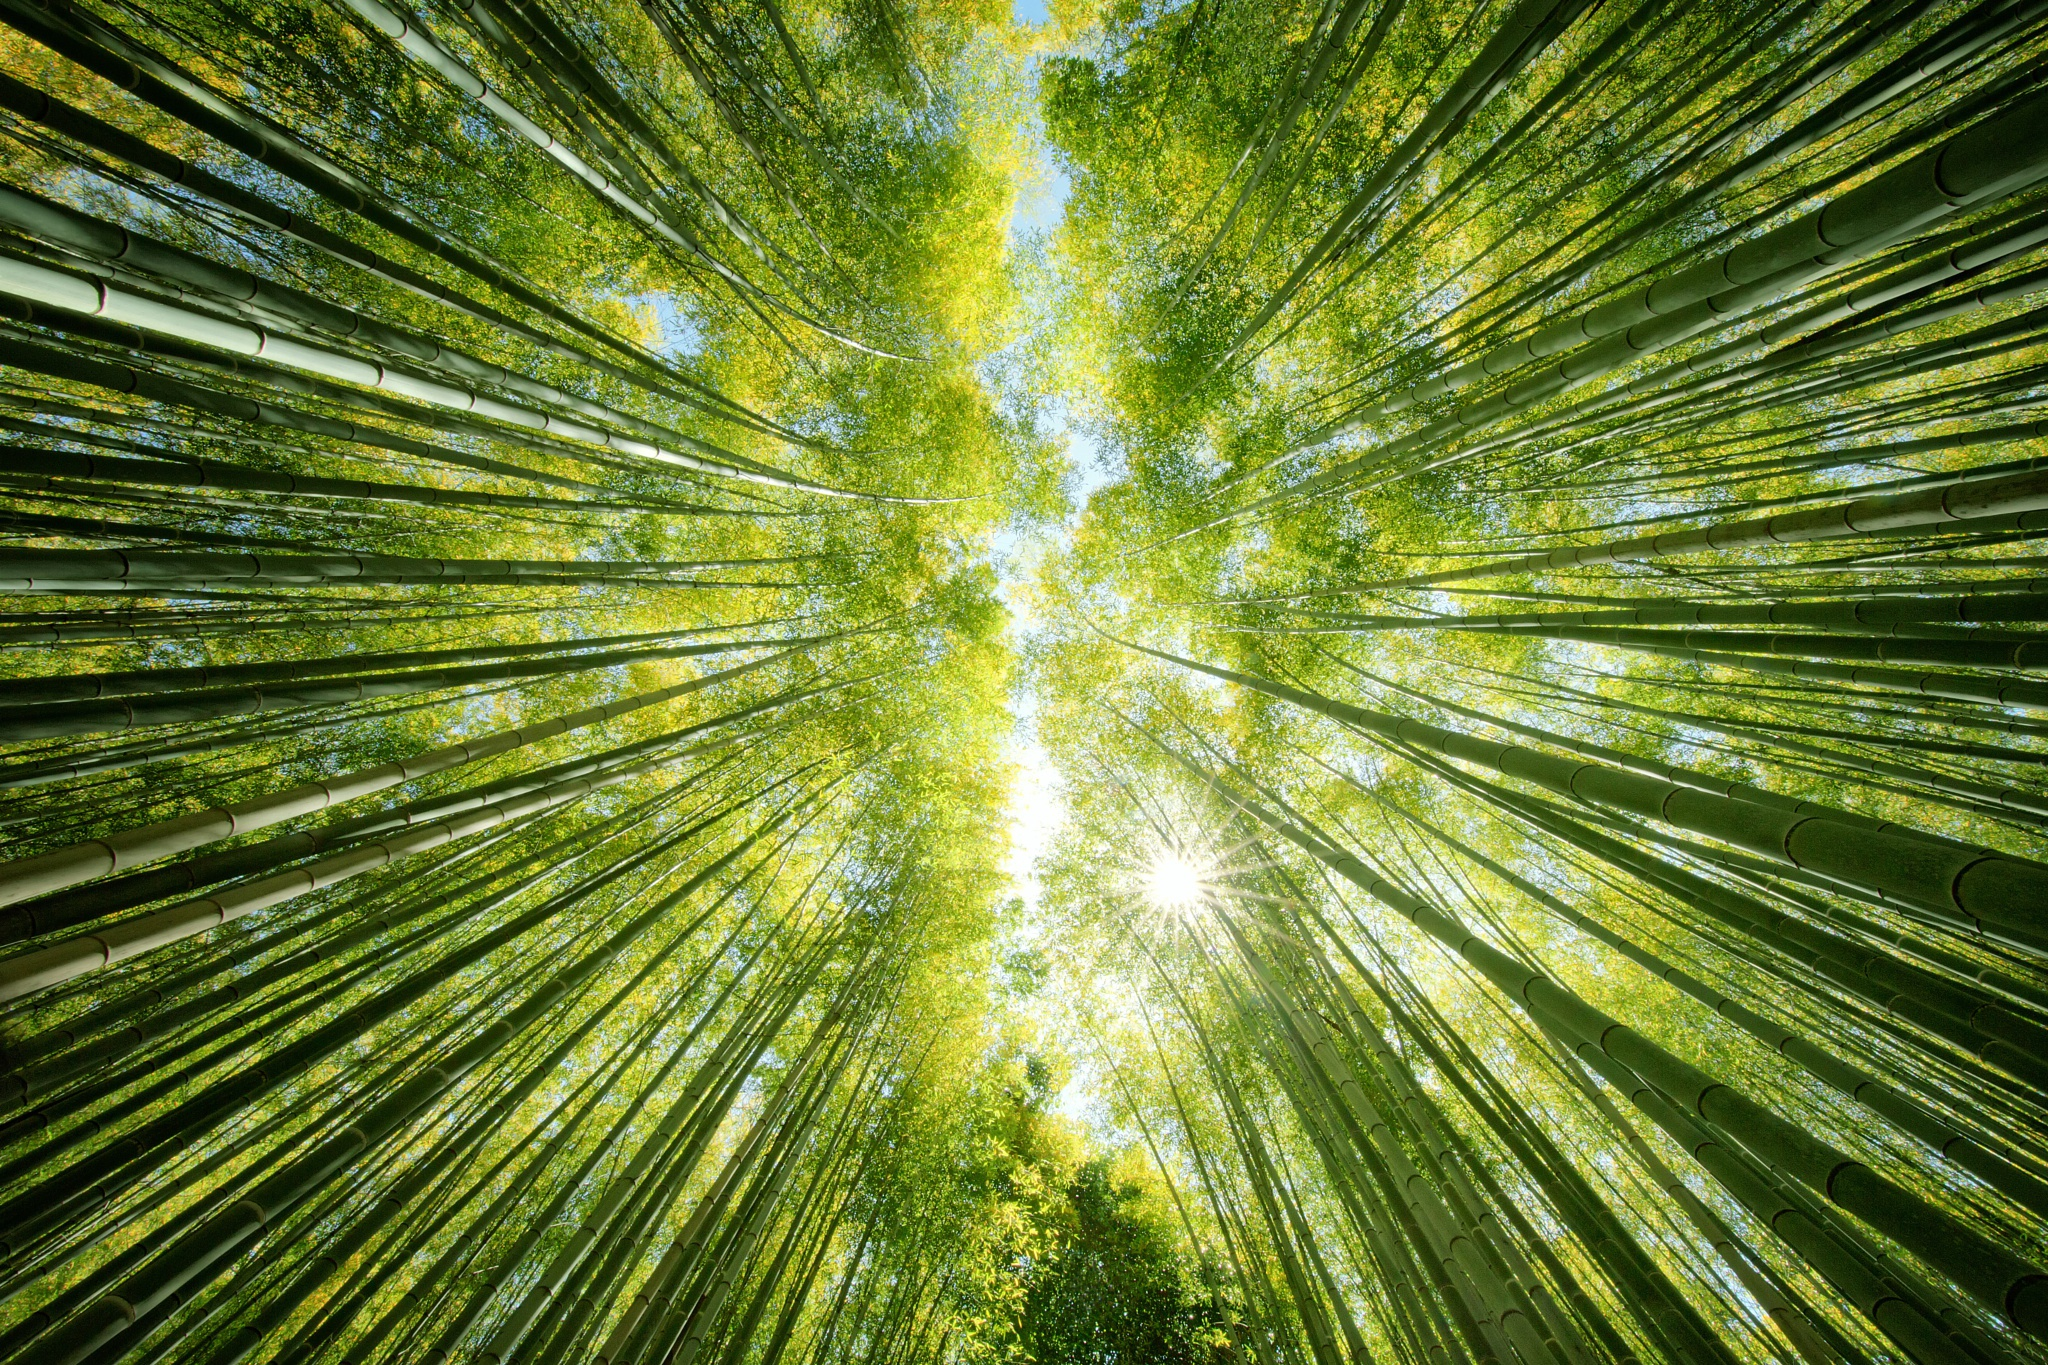 Bamboo Forest Greenery Nature 2048x1365